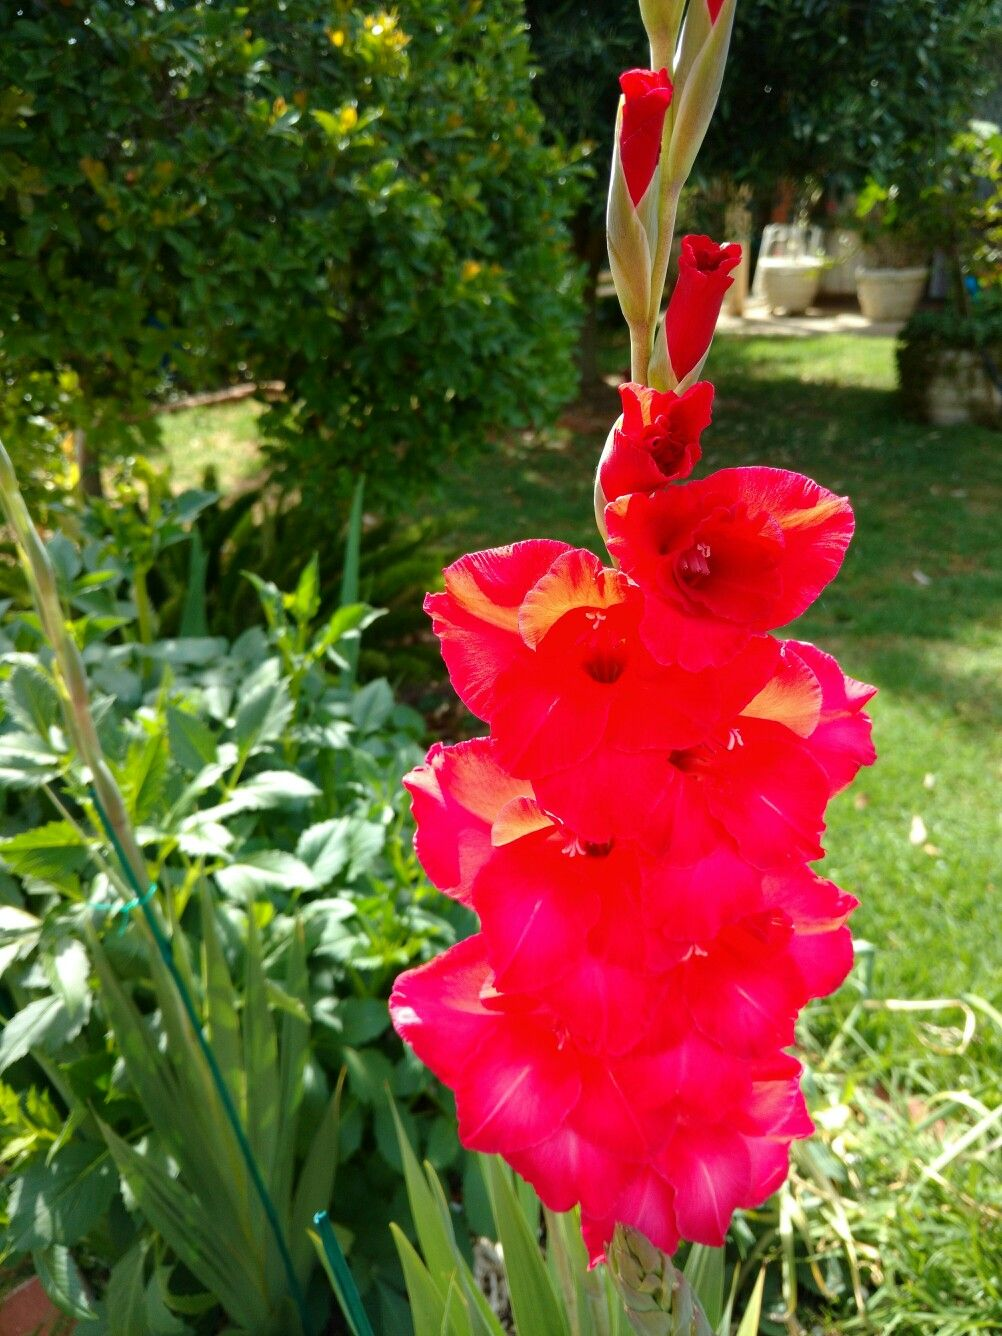 """Gladioli from the Latin word """"gladius"""" meaning sword"""